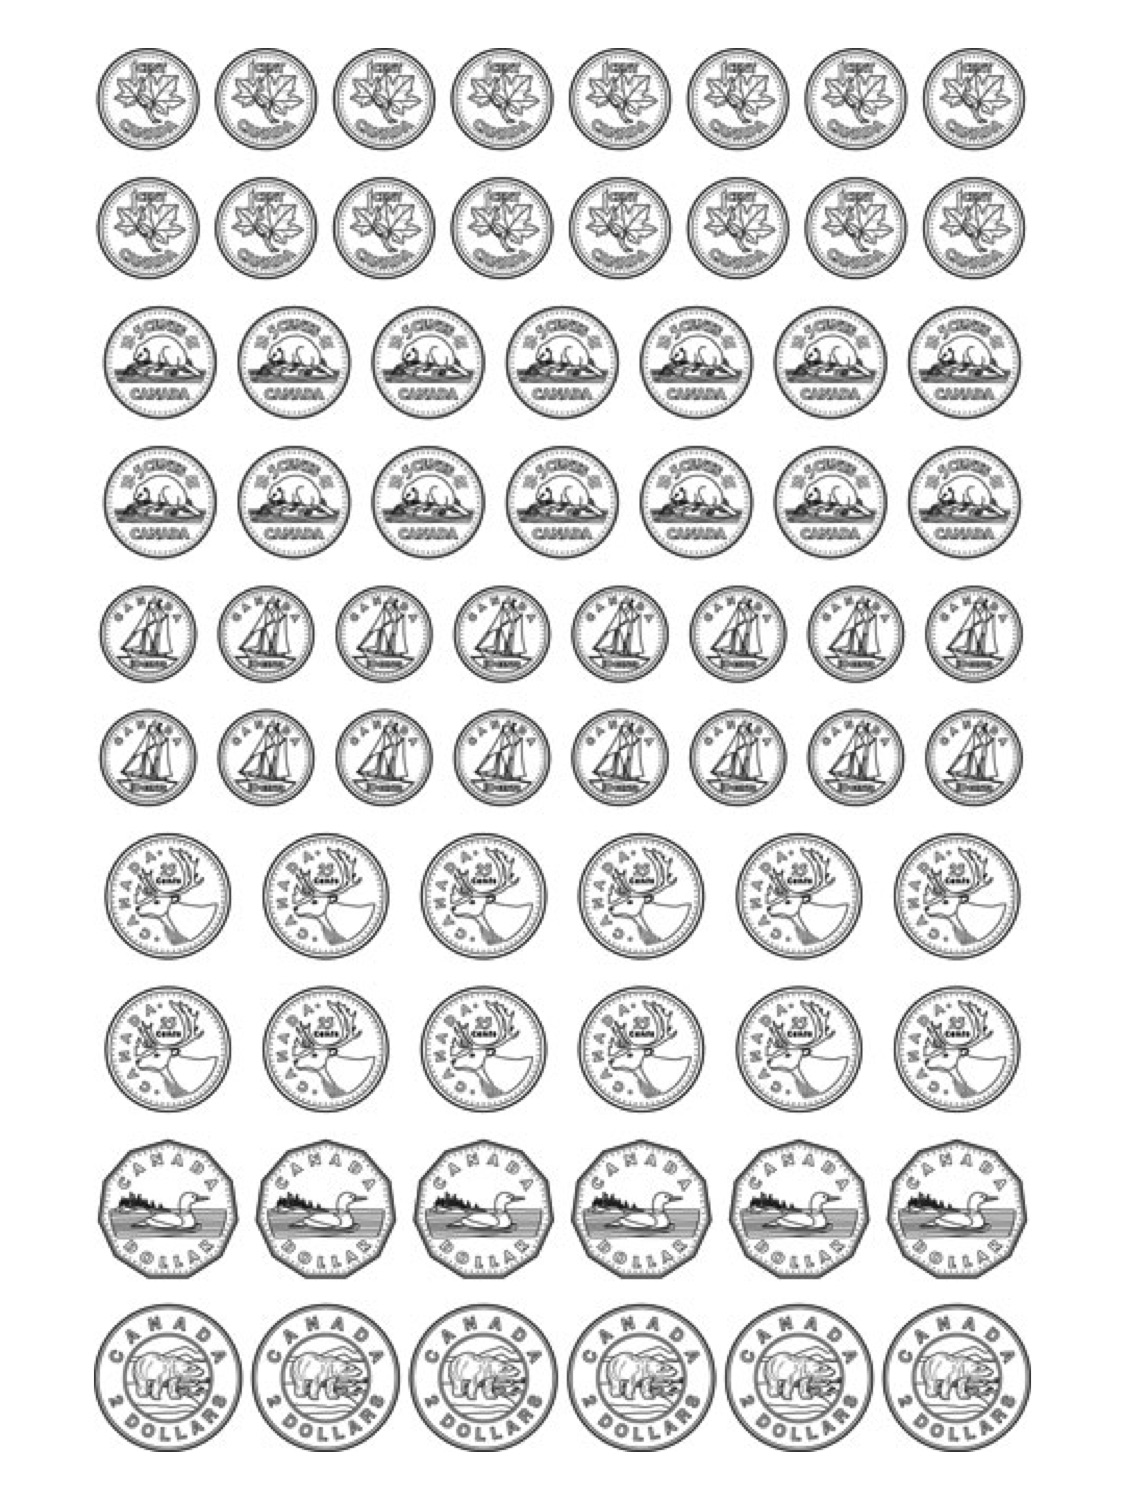 Worksheet Printable Coins coins coloring page futpal com how to make a picture into chinese dragon mask